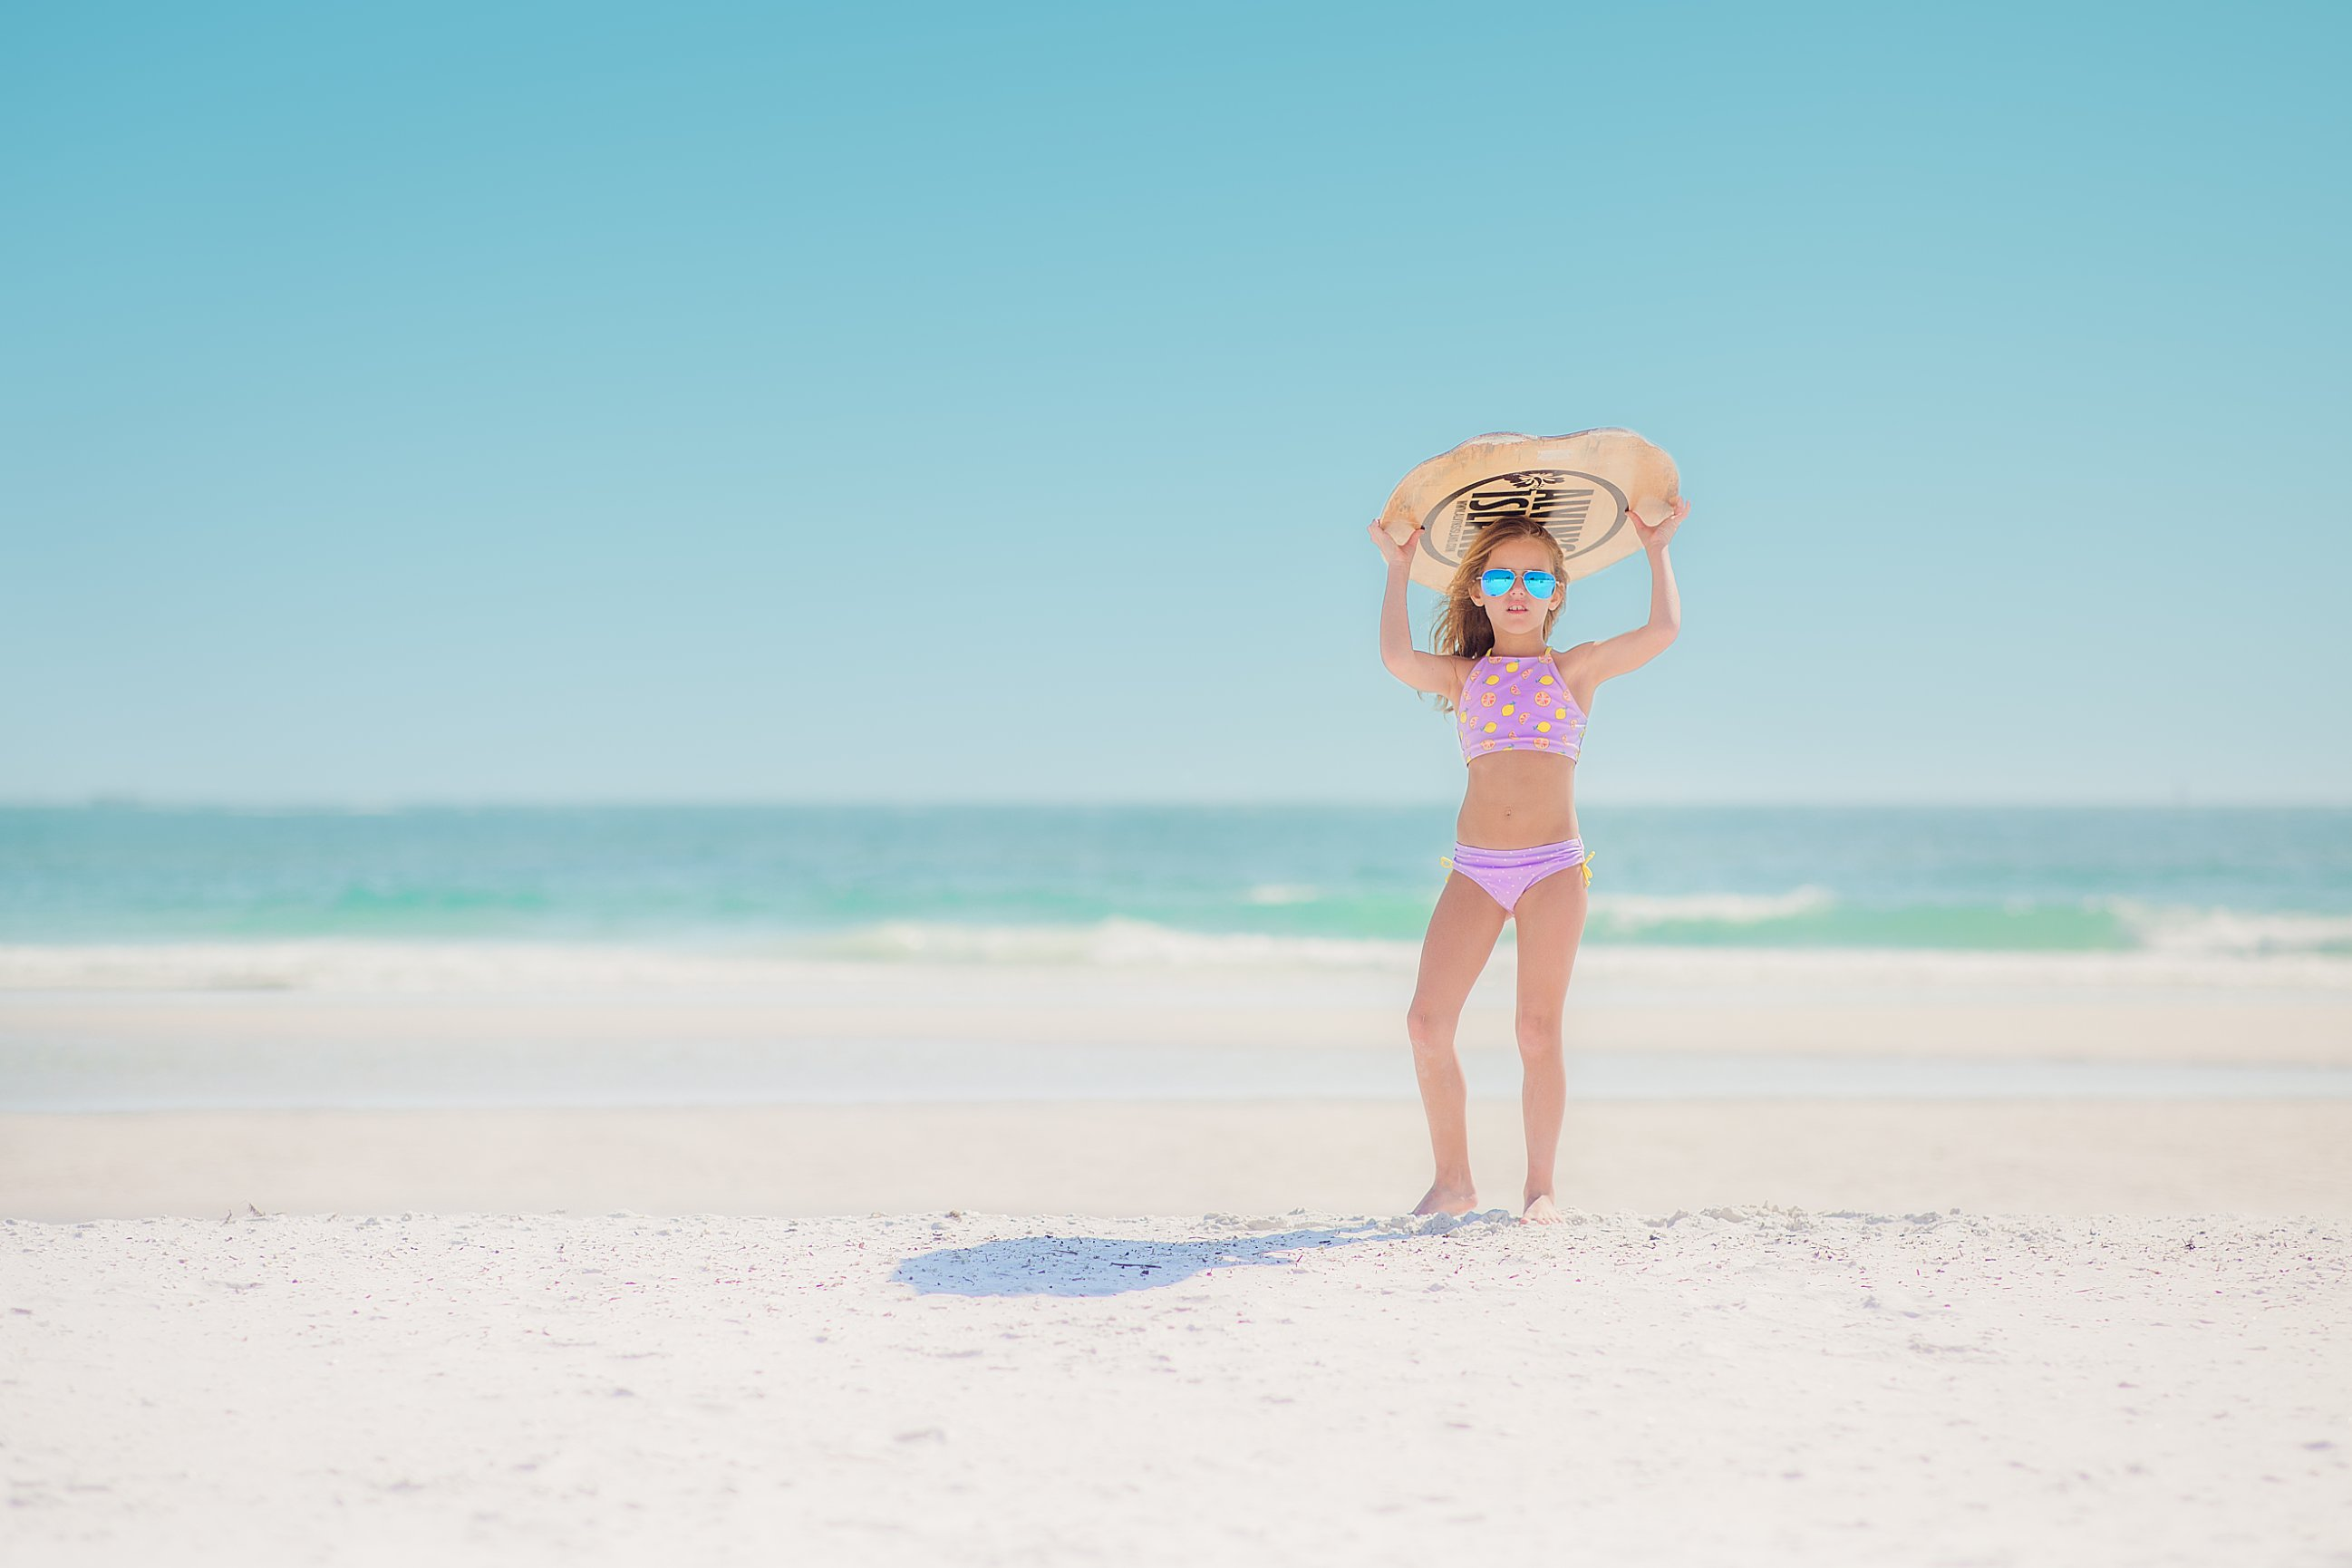 girl on beach holding surf board above head